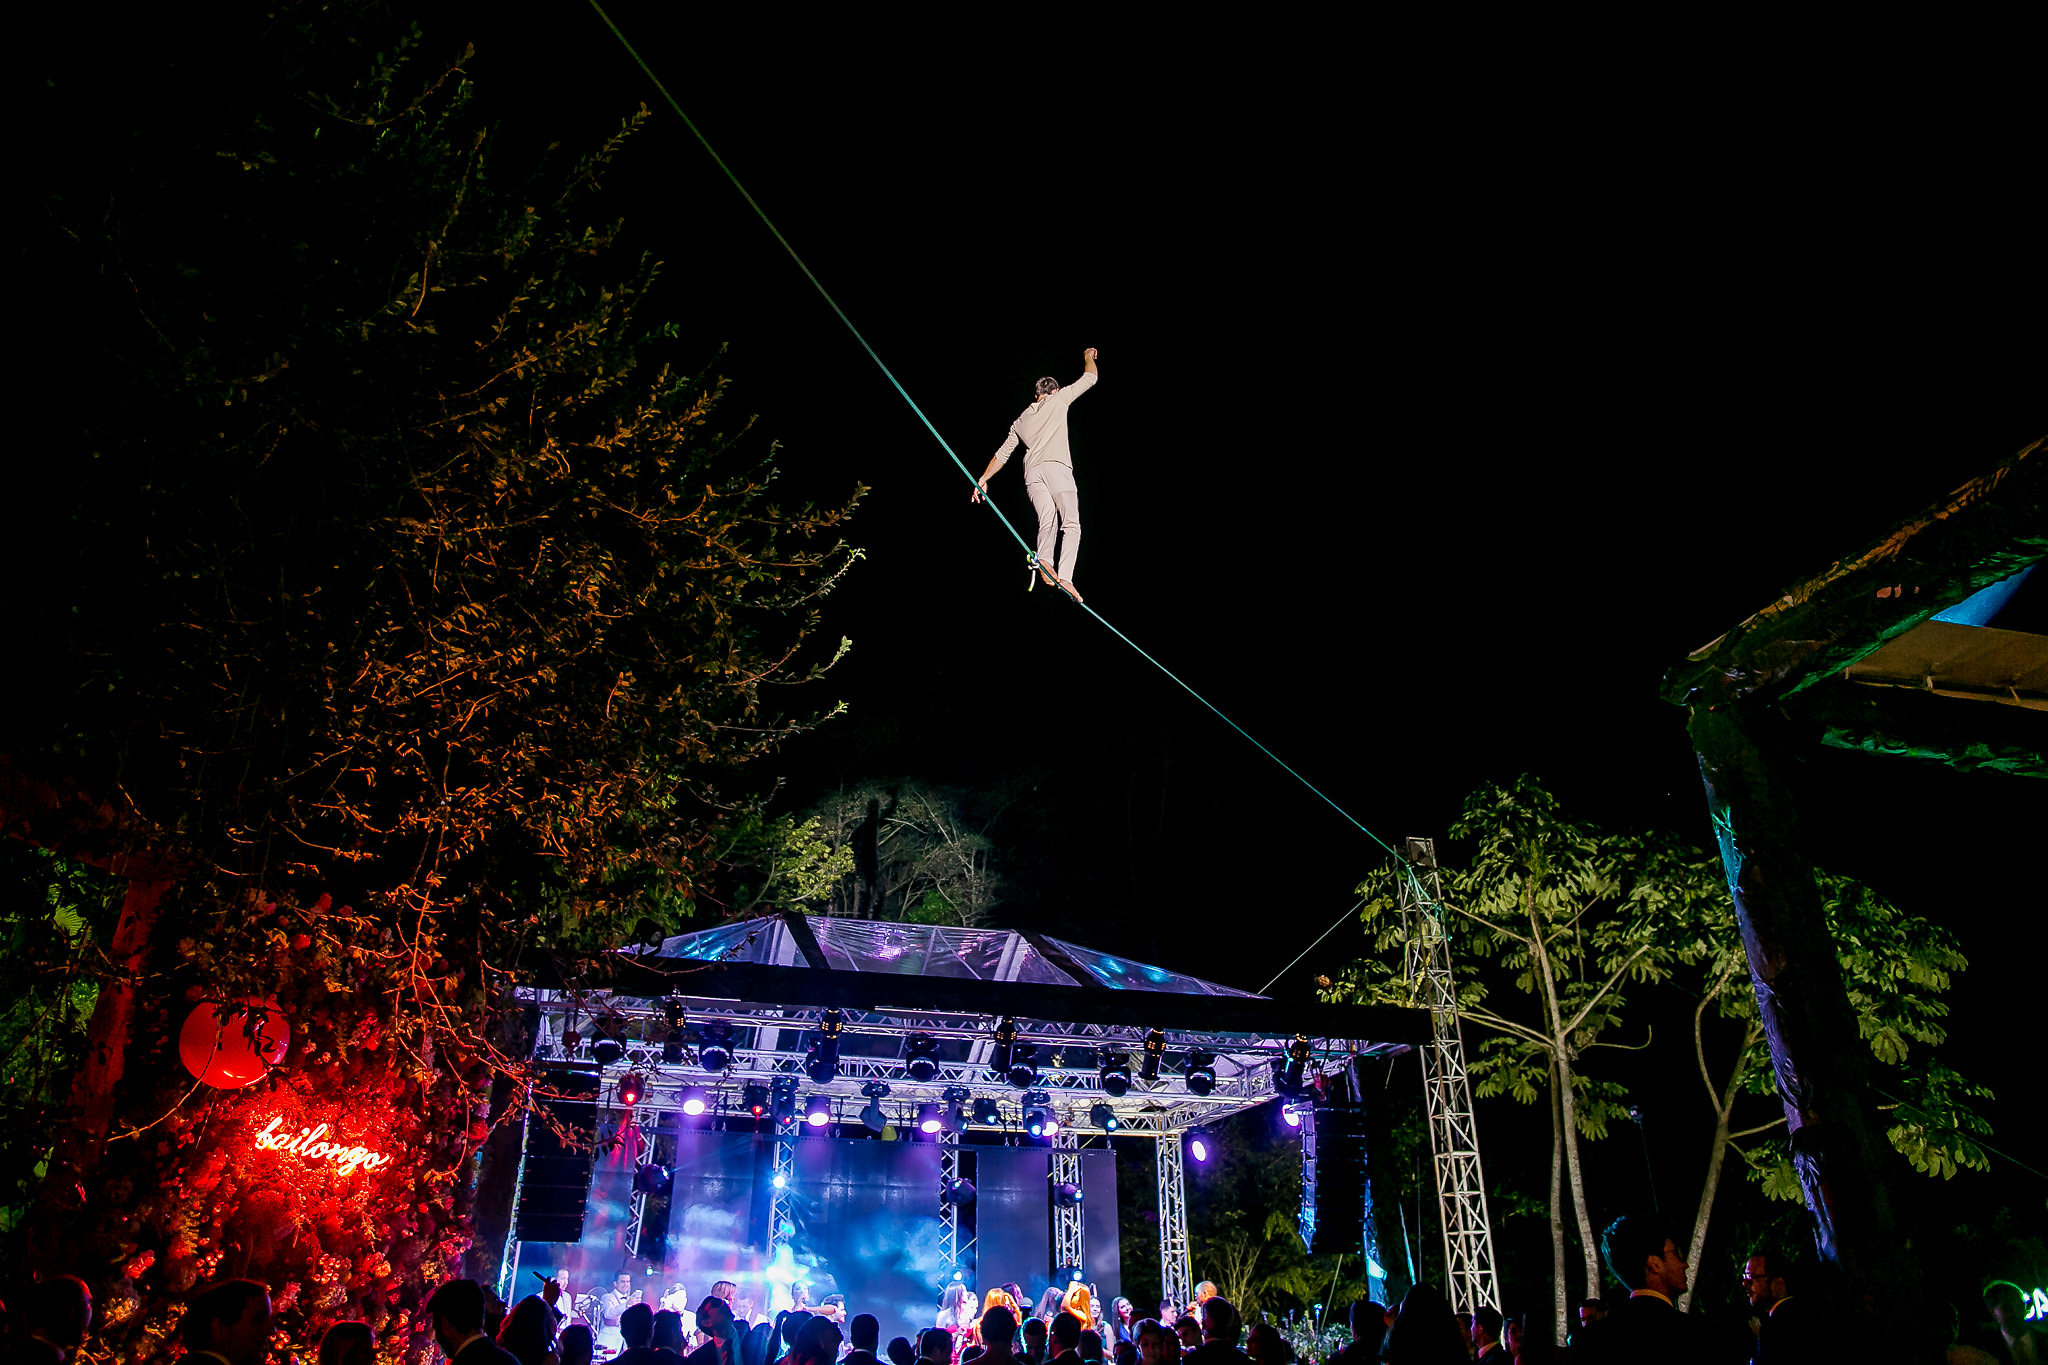 Costa Rica Wedding, circus workshop atelier taller ecole school suisse schweiz switzerland Slackline Lyell Grunberg show performance spectacle Highline trickline (7).jpg